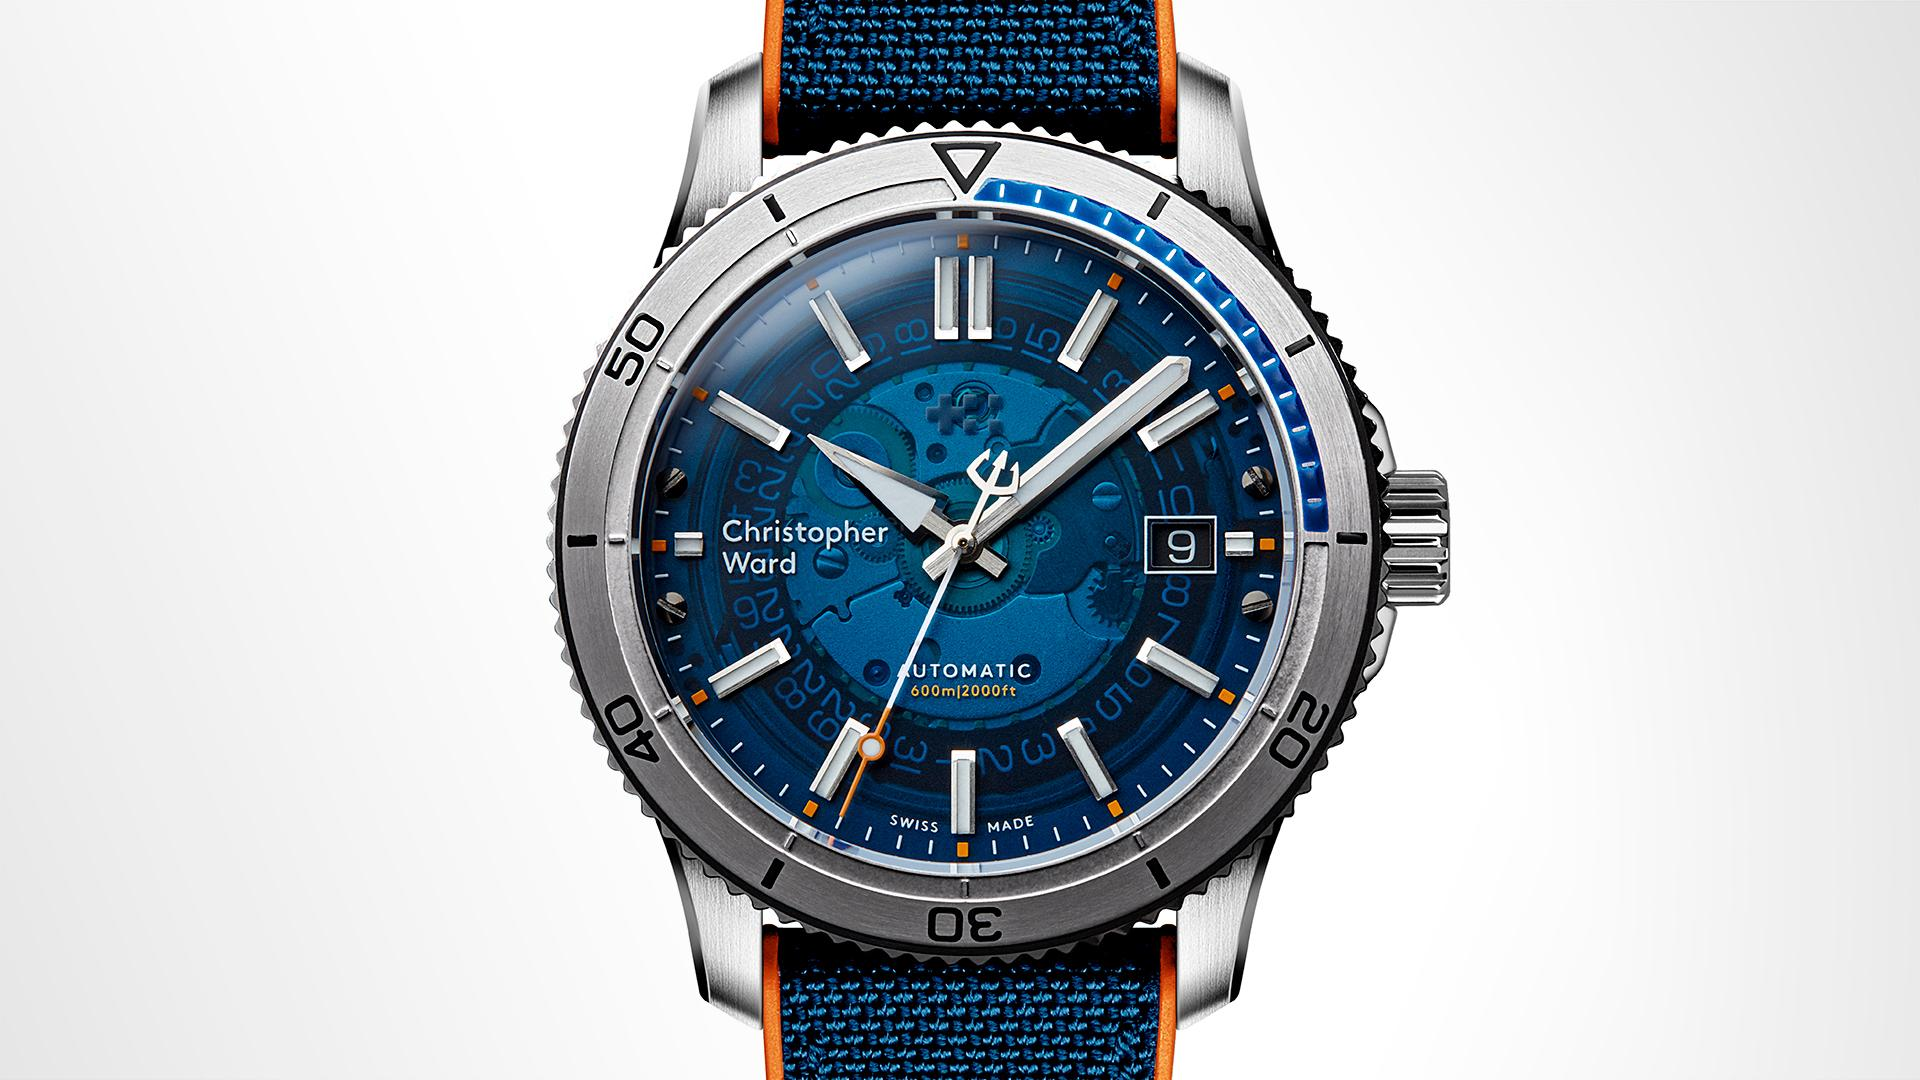 Christopher Ward C60 Sapphire dive watch